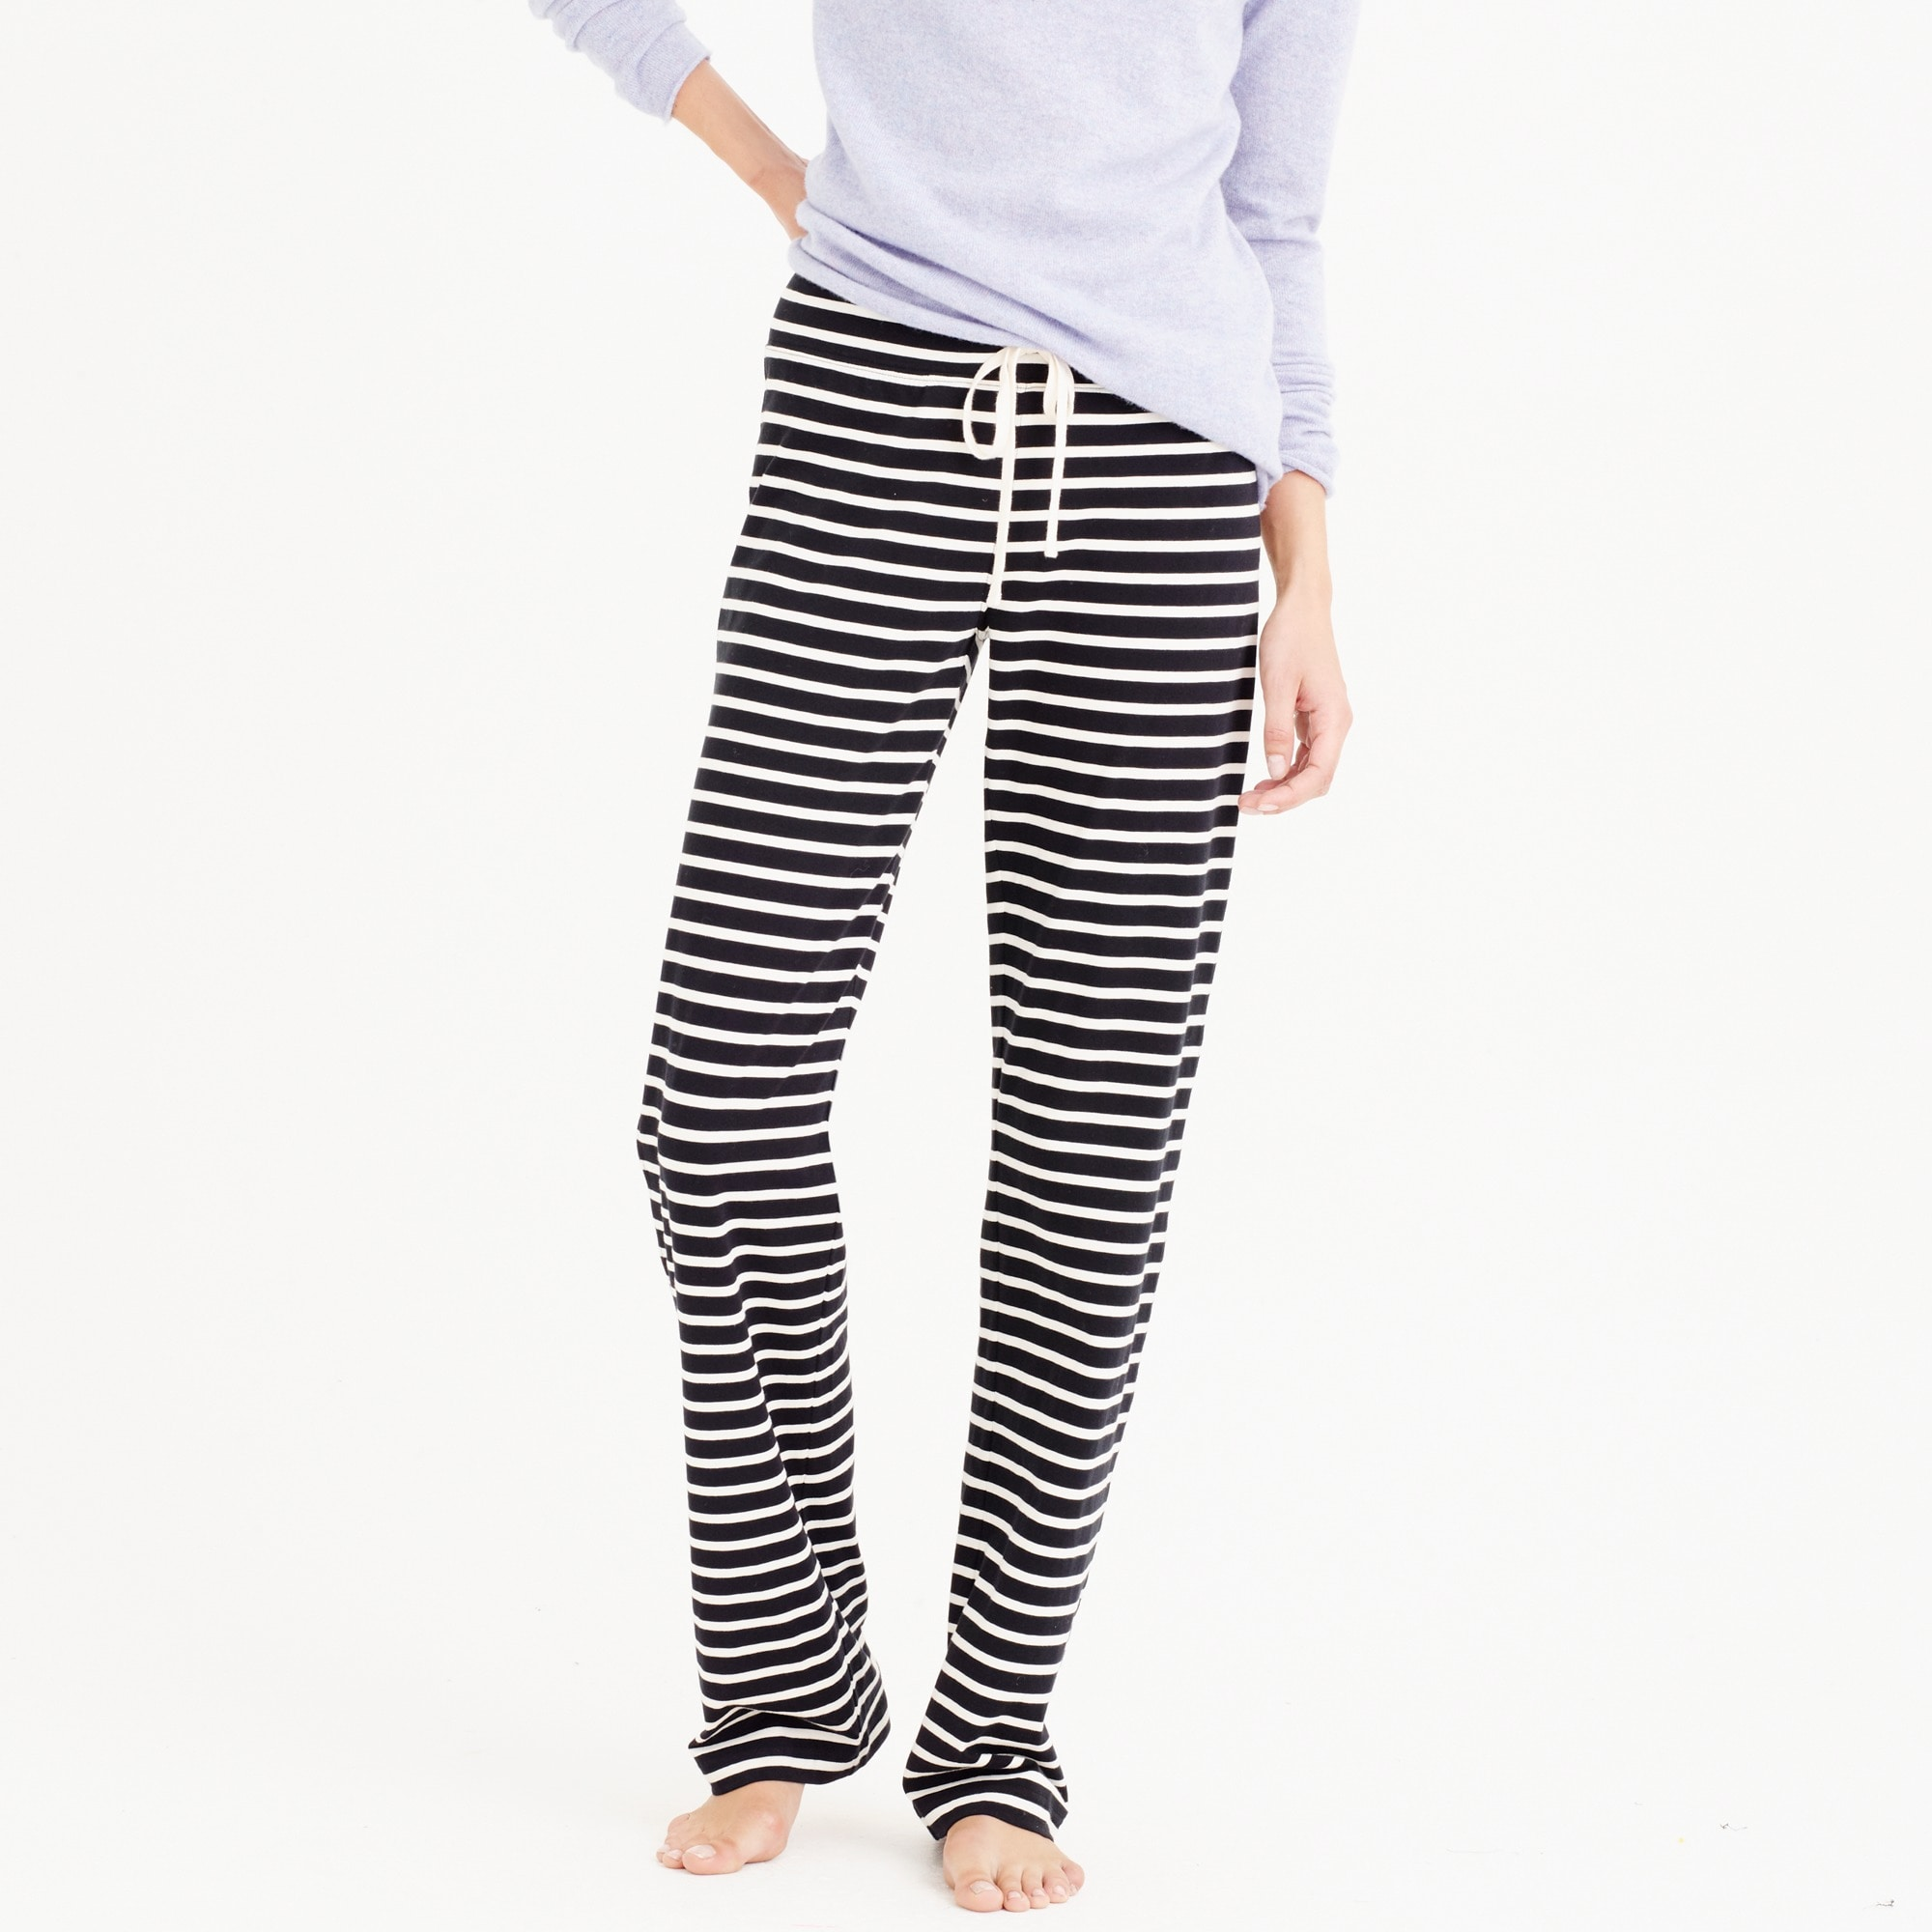 Dreamy cotton pant in stripe women sweatshirts & sweatpants c